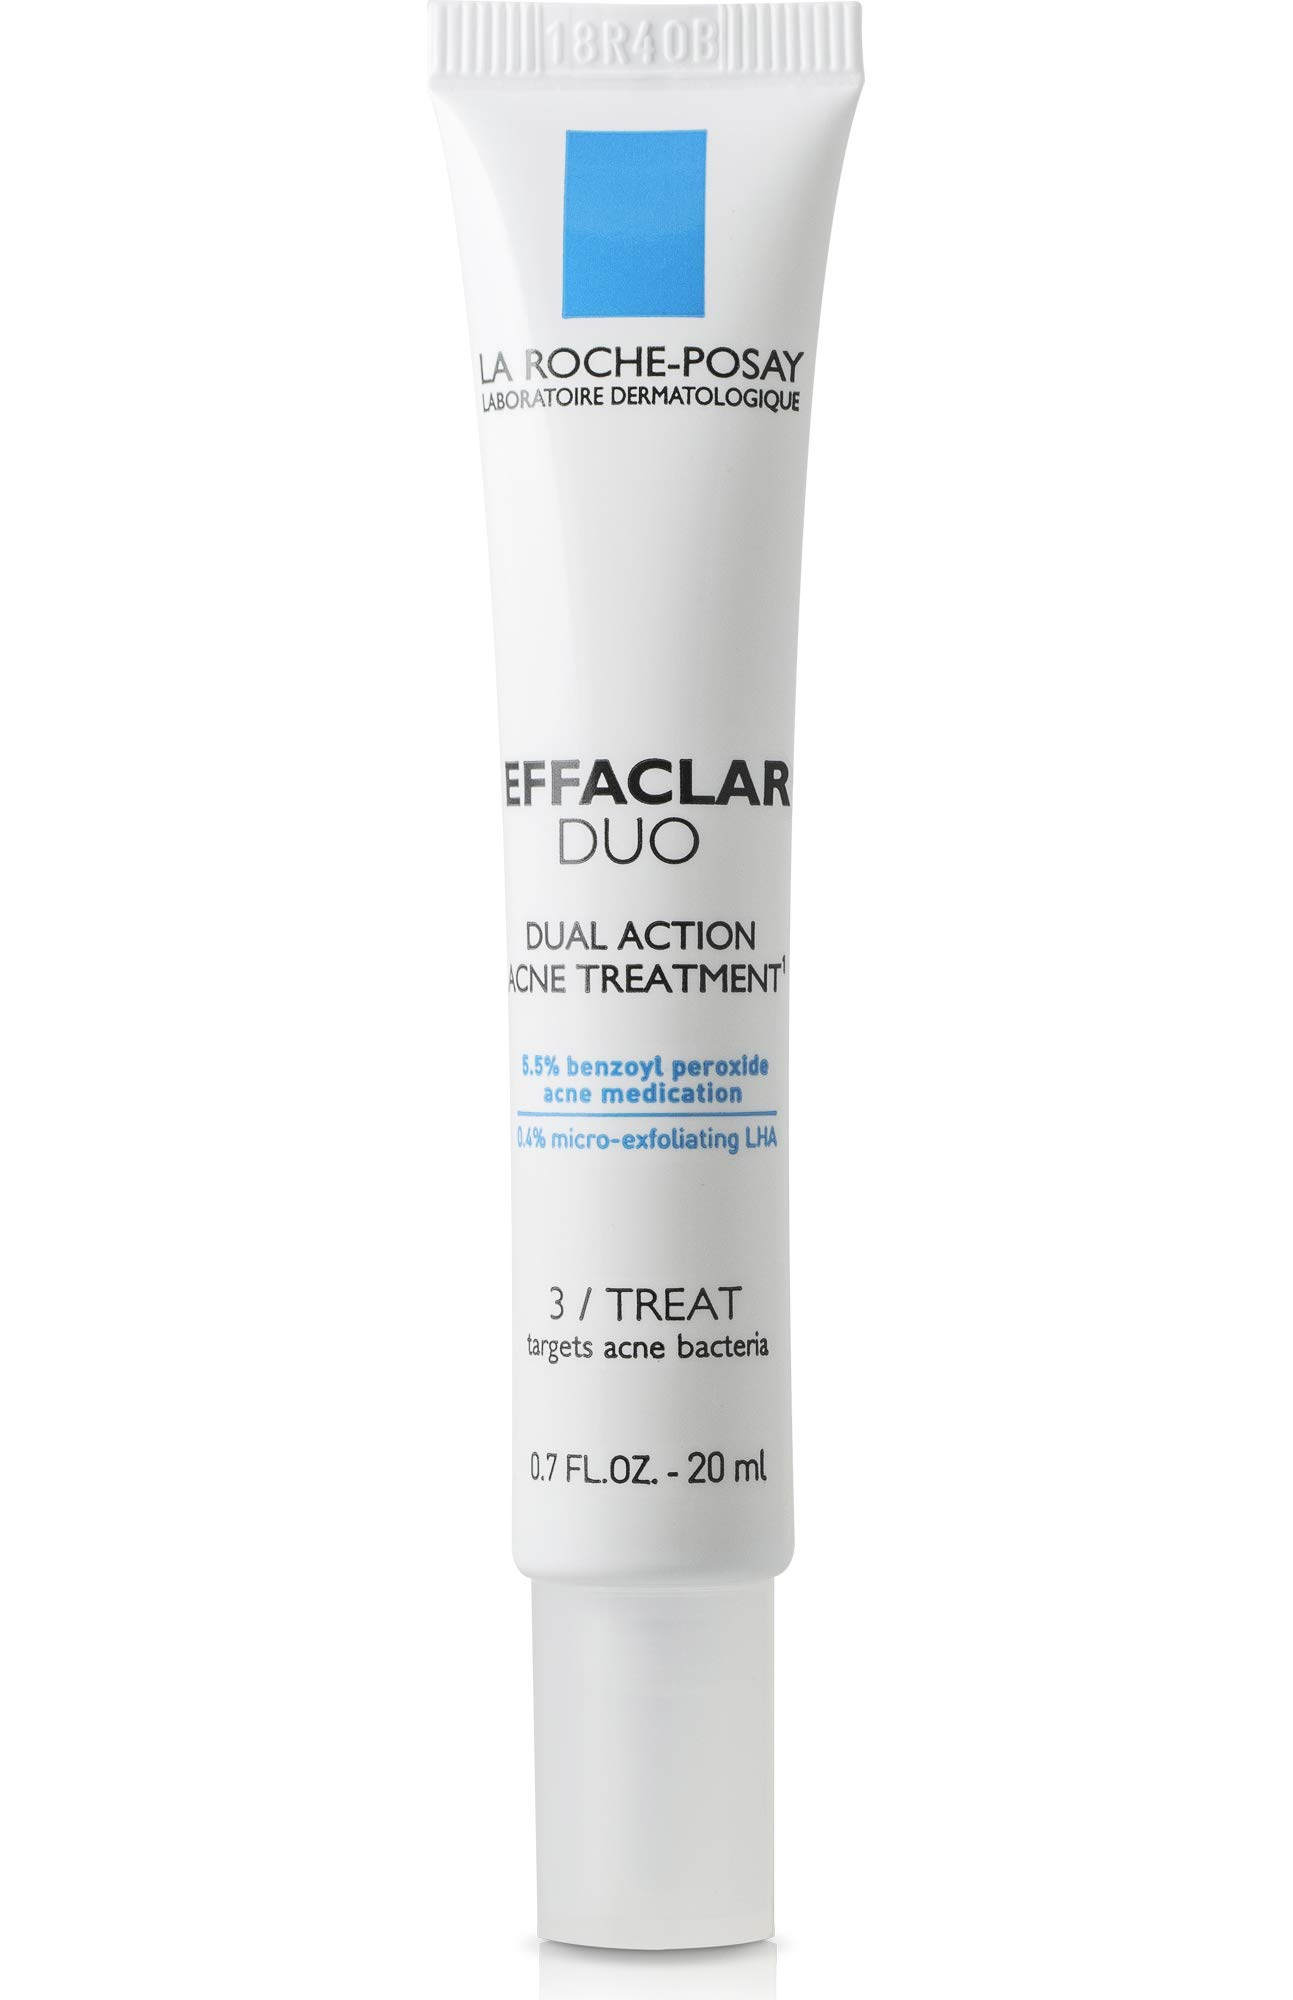 La Roche-Posay Effaclar Duo Dual Action Acne Spot Treatment Cream with Benzoyl Peroxide, 0.67 Fl oz